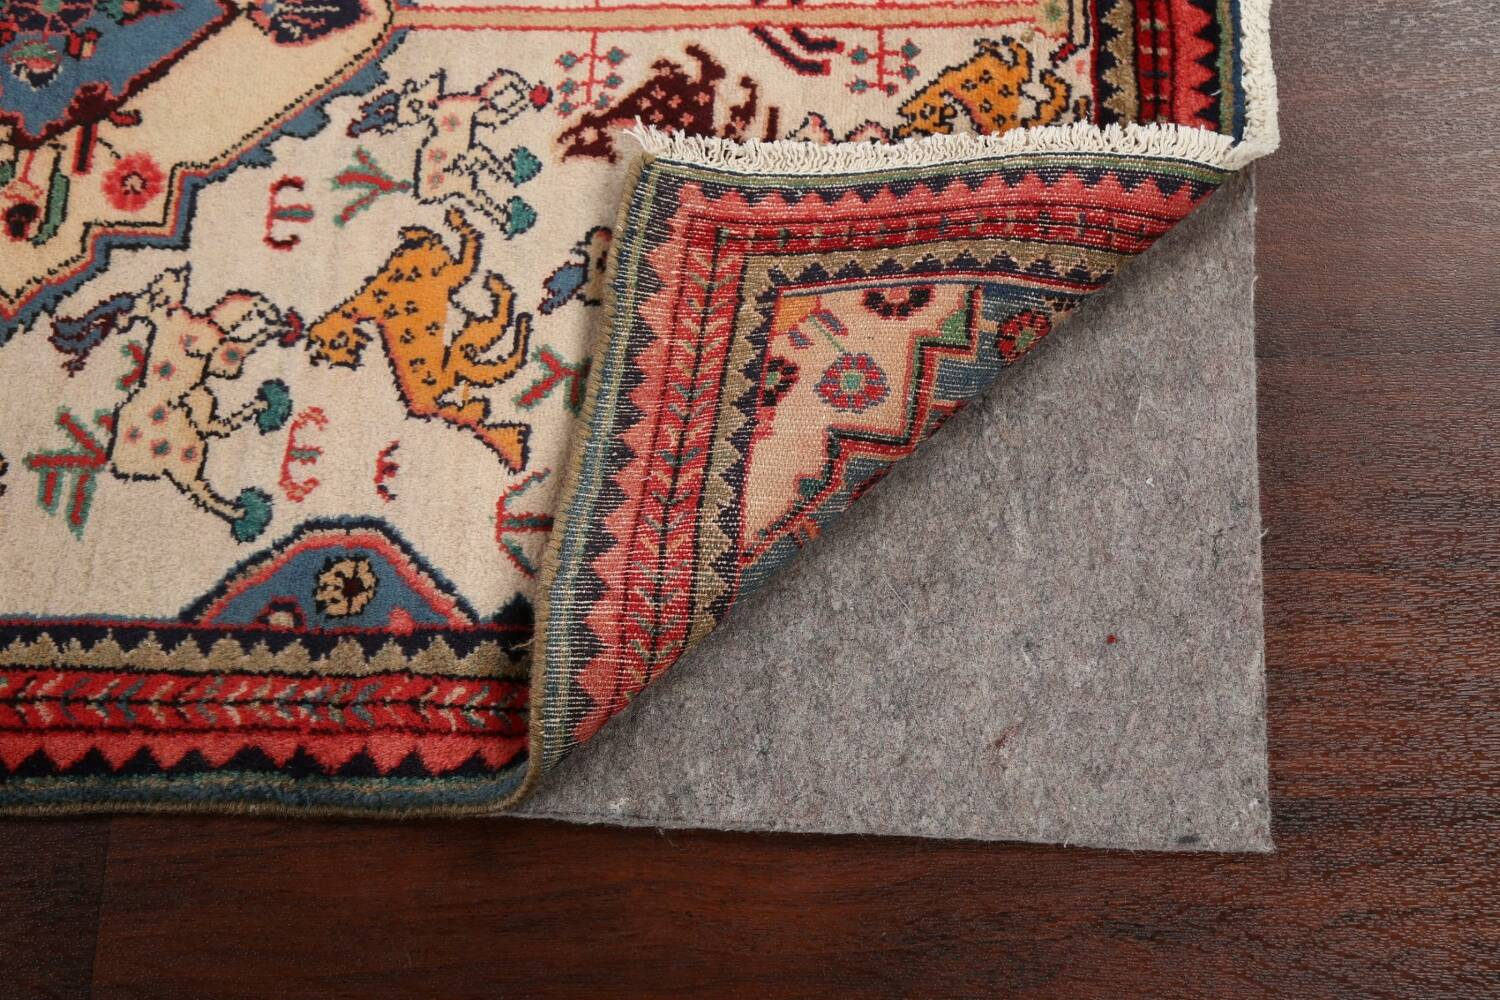 Animal Pictorial Vegetable Dye Senneh Persian Area Rug 3x5 image 7